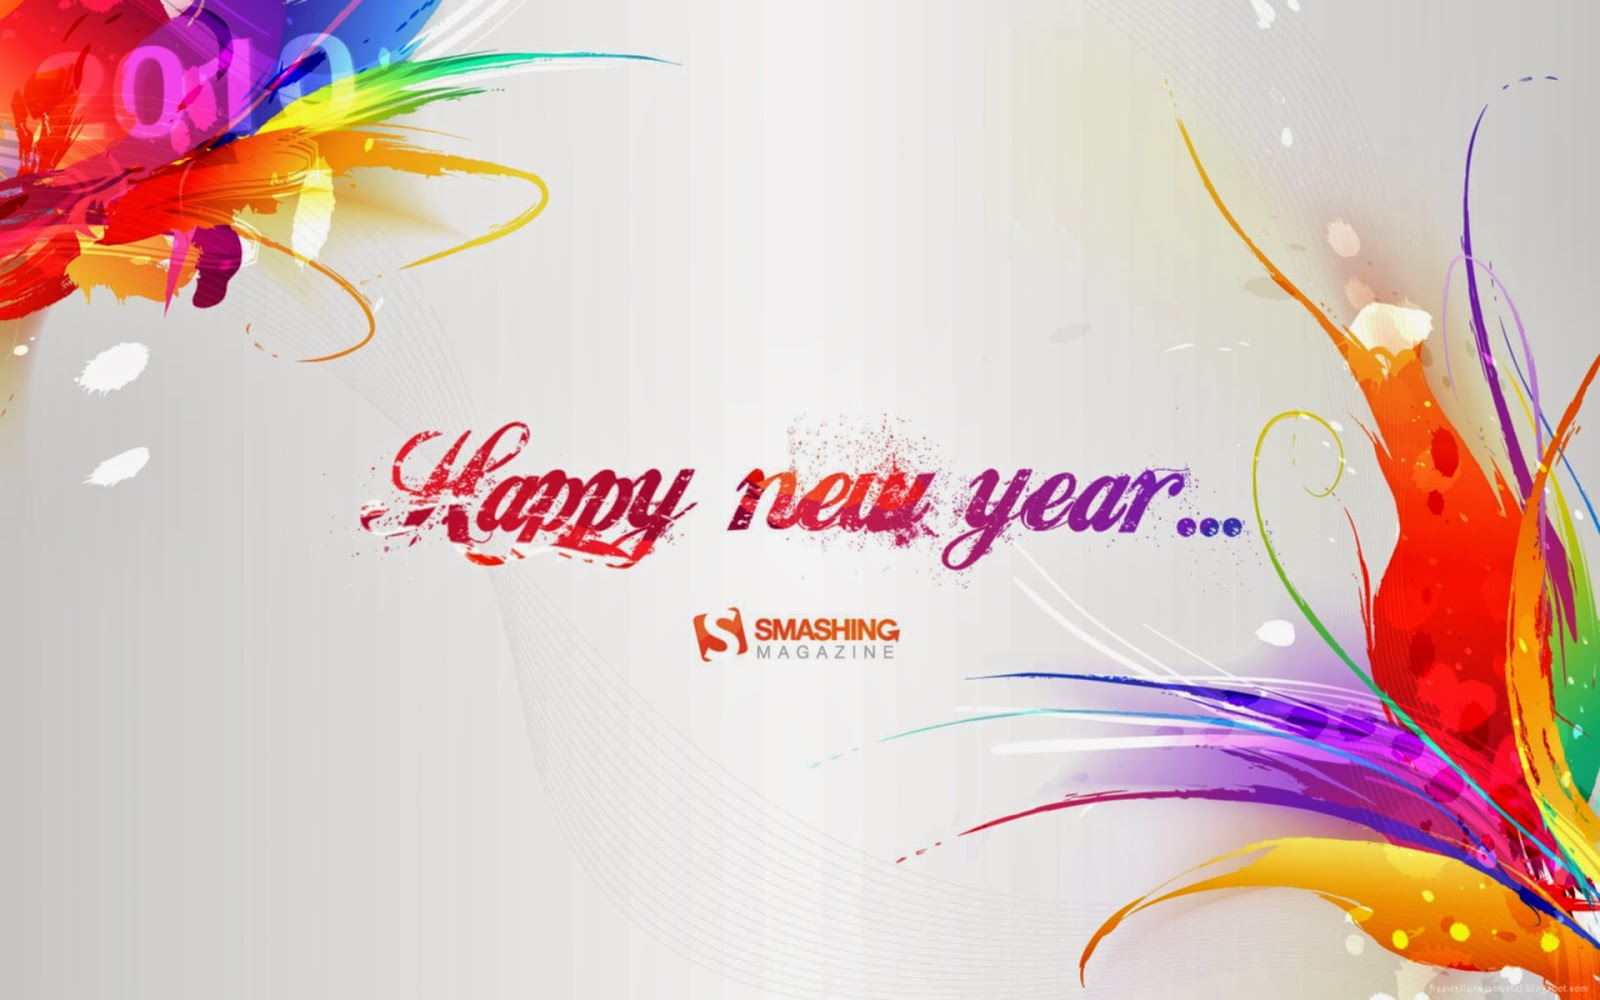 Best Hd Superb New Year Greetings And Wishes Stuff Happy New Year